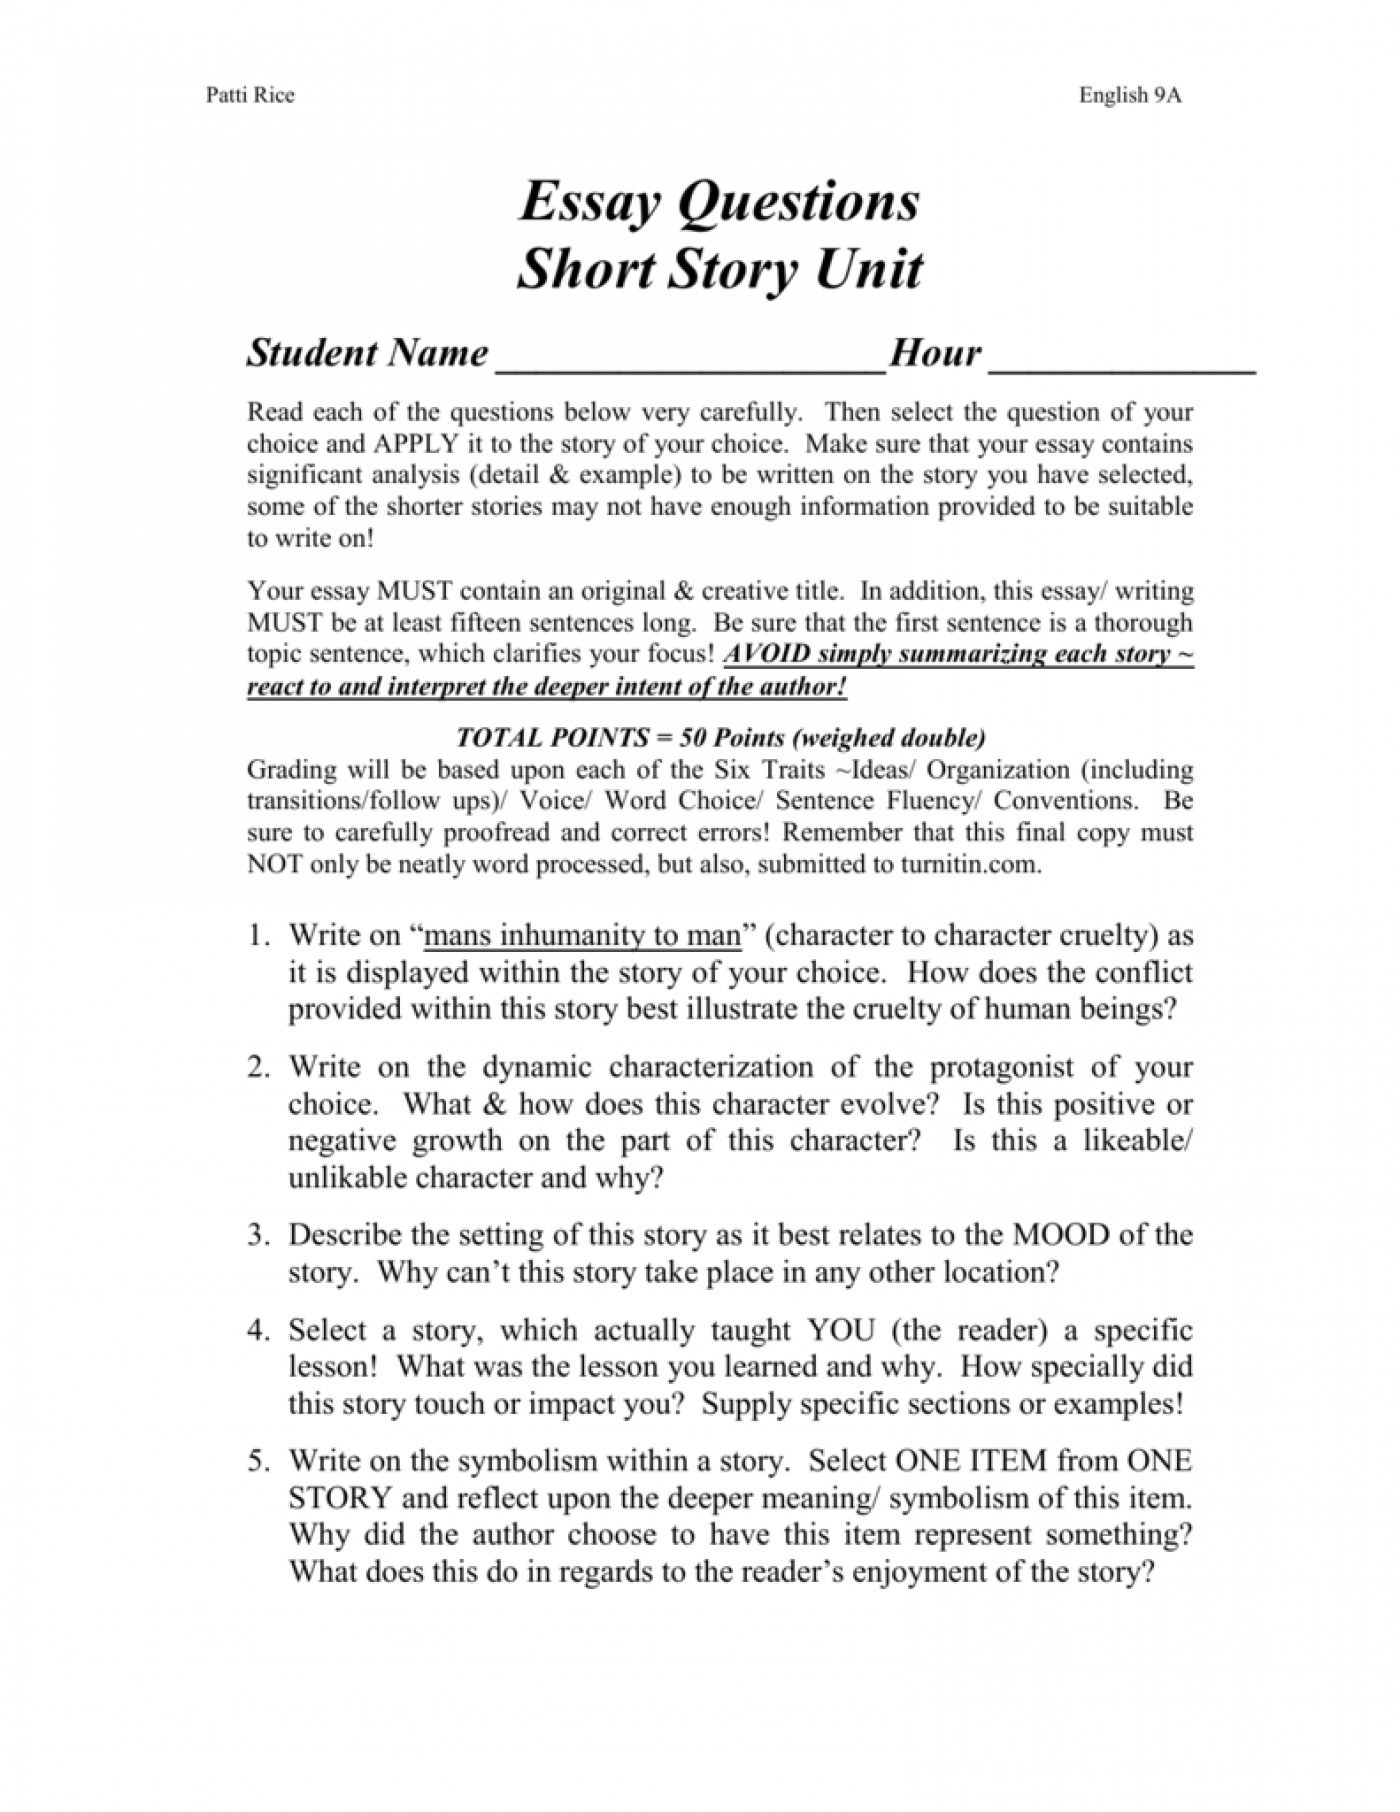 006 Short Story Essay Examples Example 008001643 1 Unforgettable Review Analysis Compare And Contrast 1400